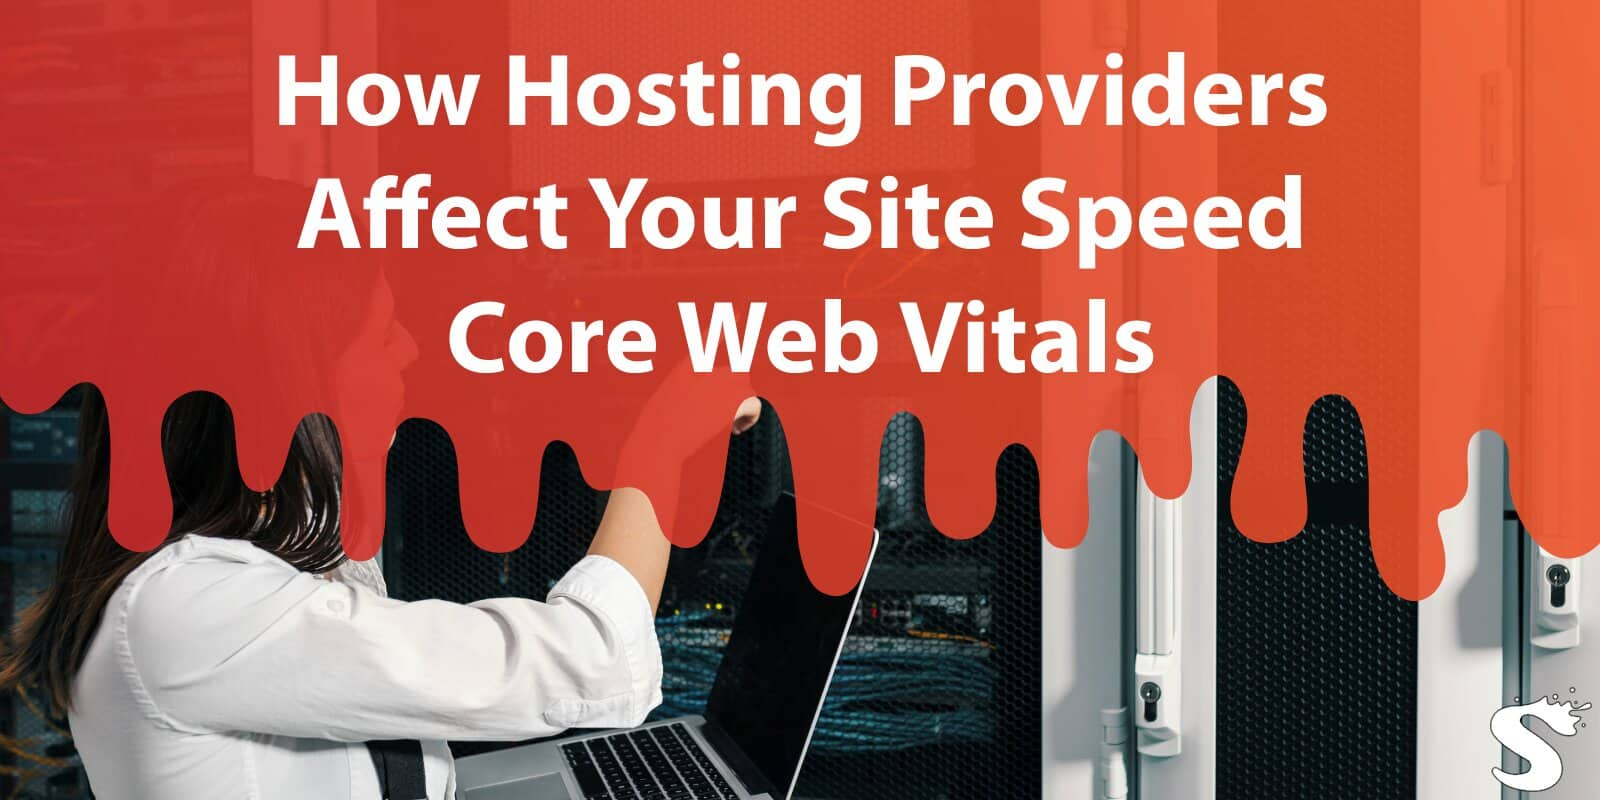 How Hosting Providers Affect Your Site Speed Core Web Vitals